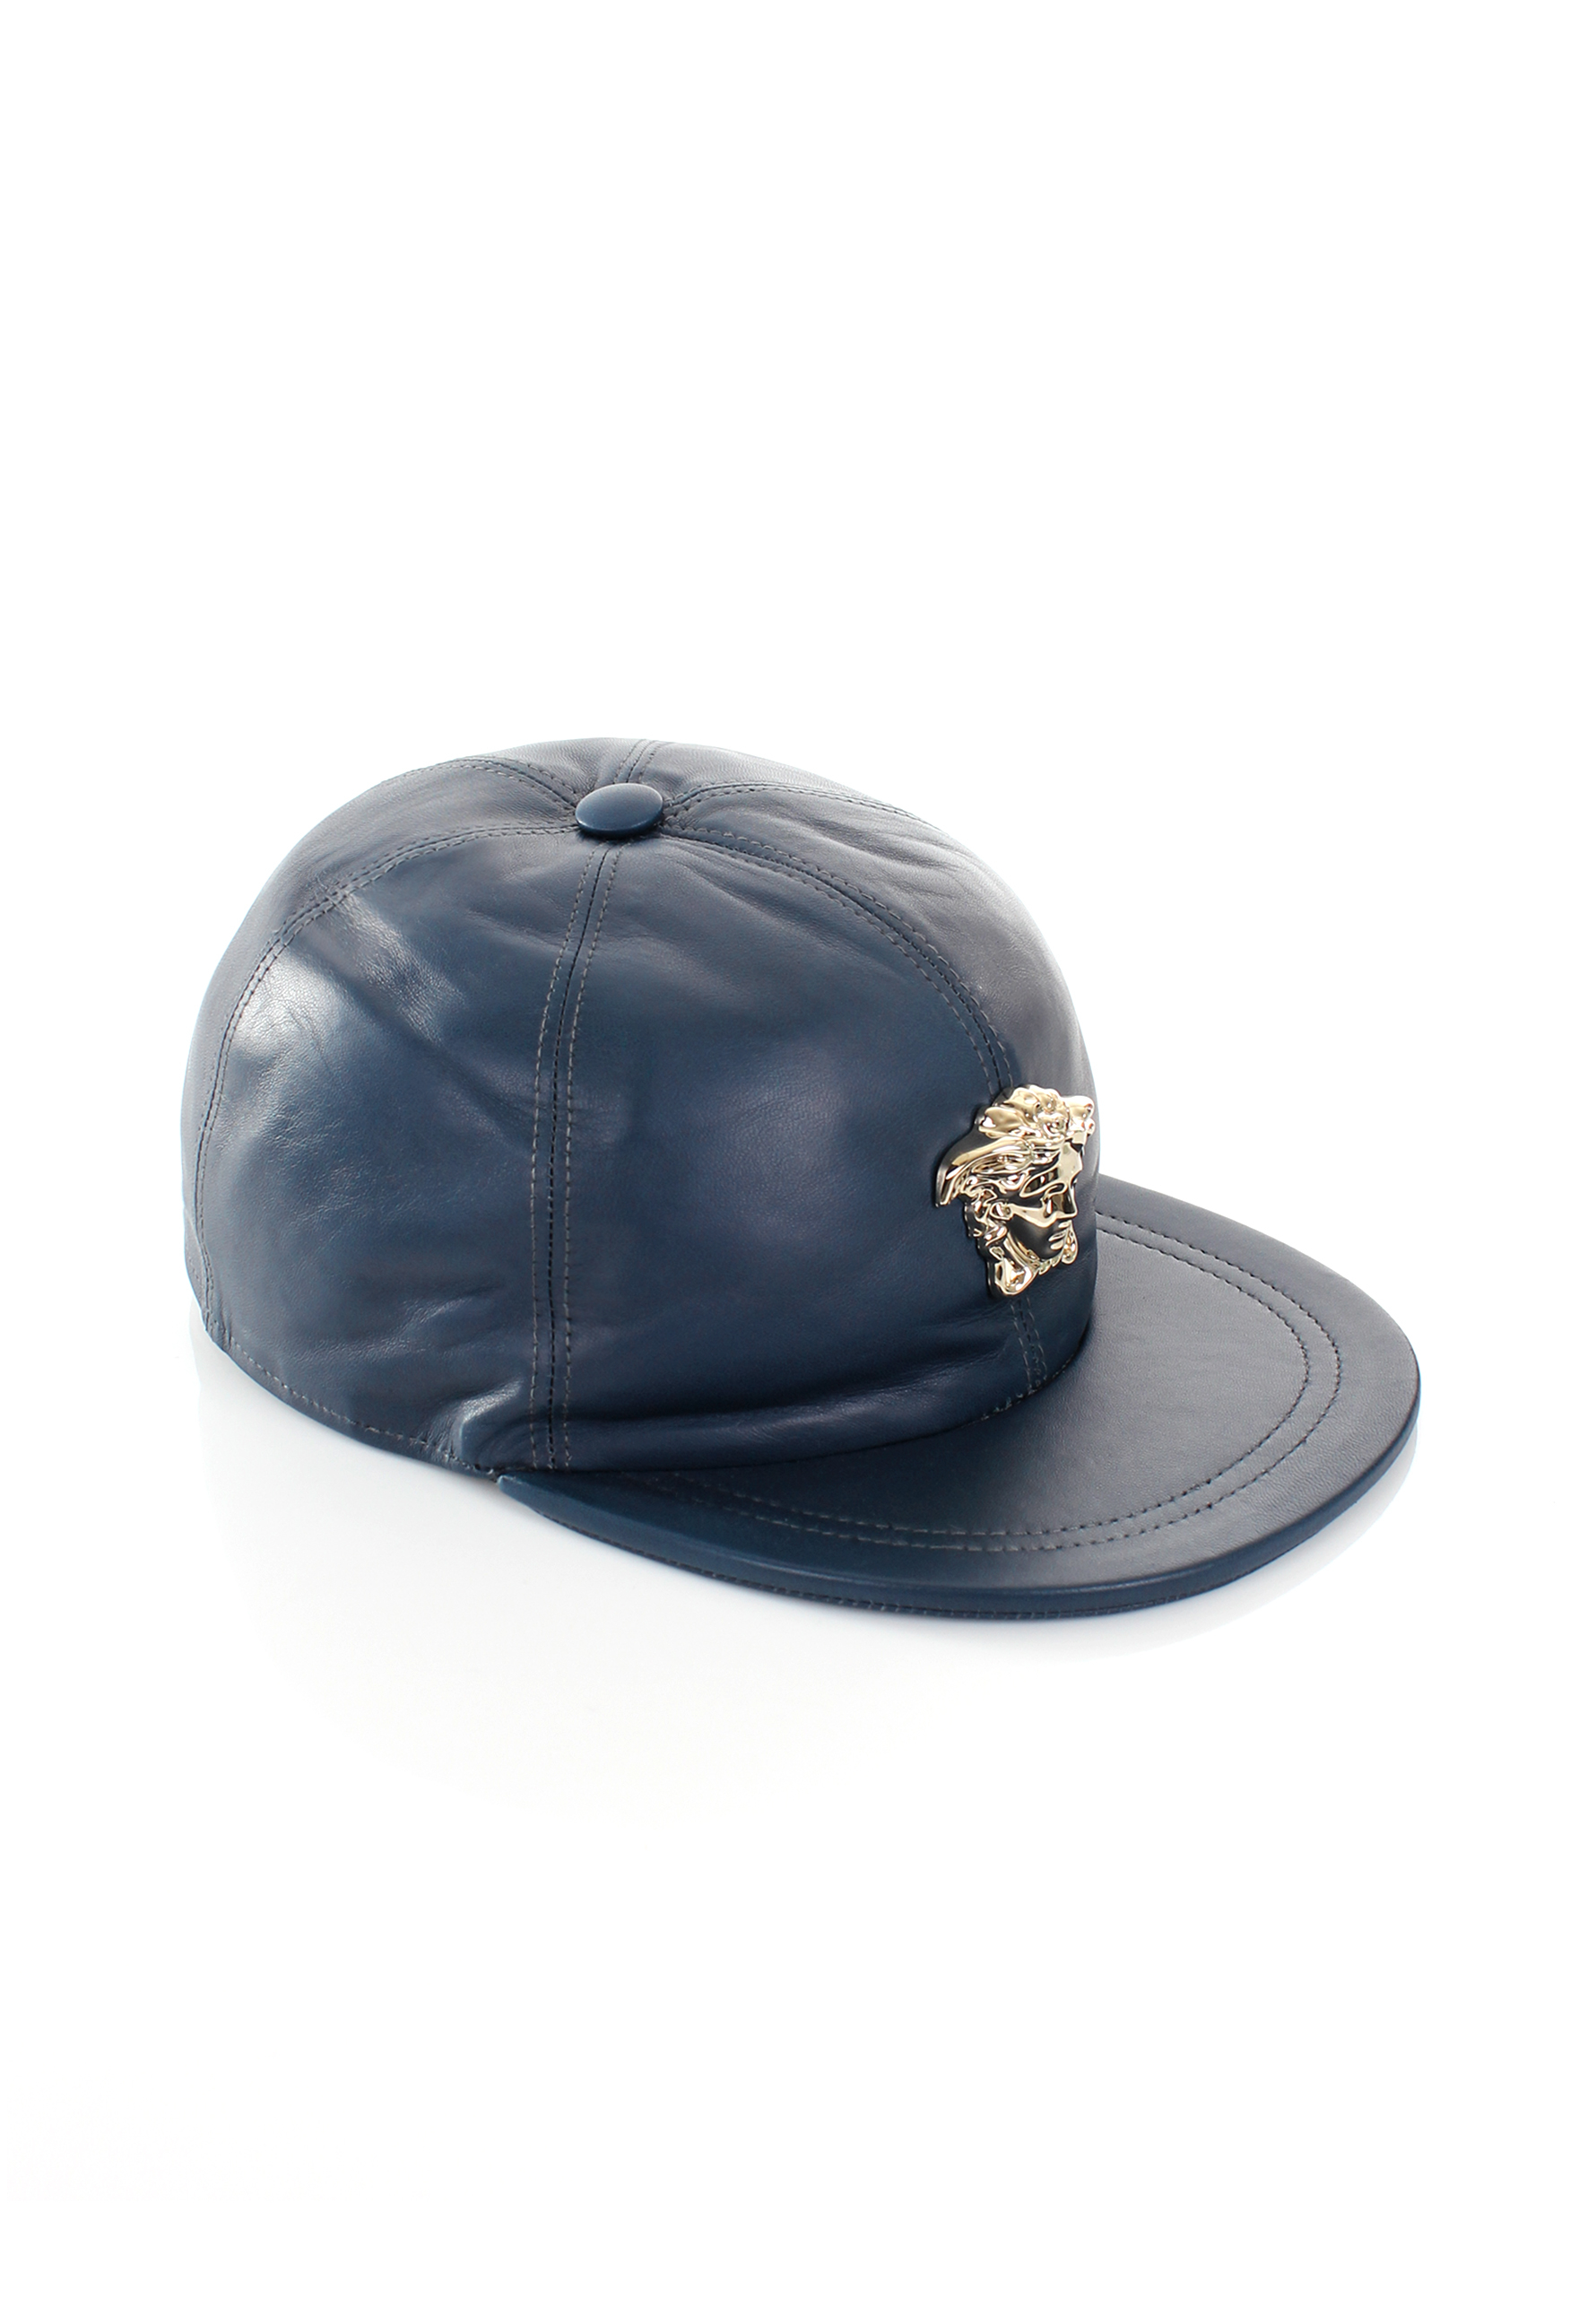 3834049b8cc Lyst - Versace Gold Medusa Leather Cap Blue in Blue for Men